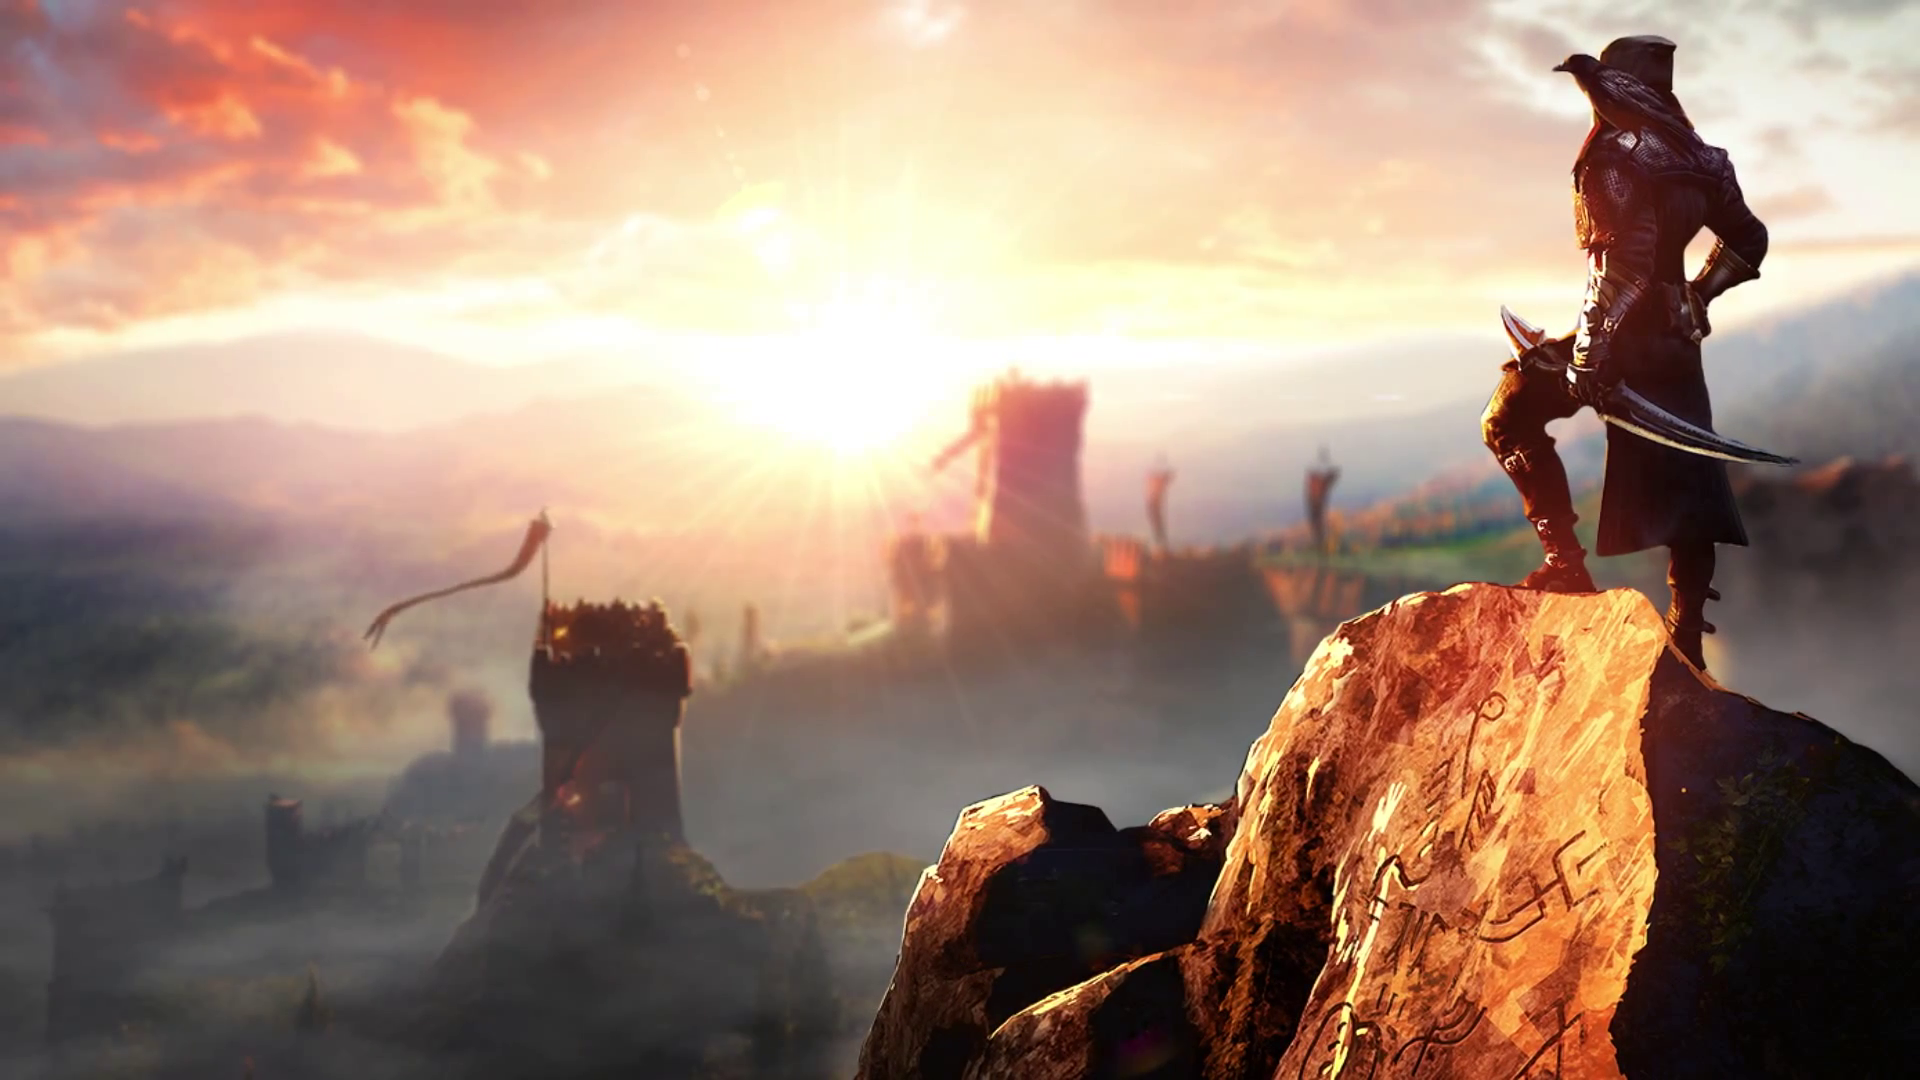 Free Download Dragon Age Inquisition The Towers Wallpapers And